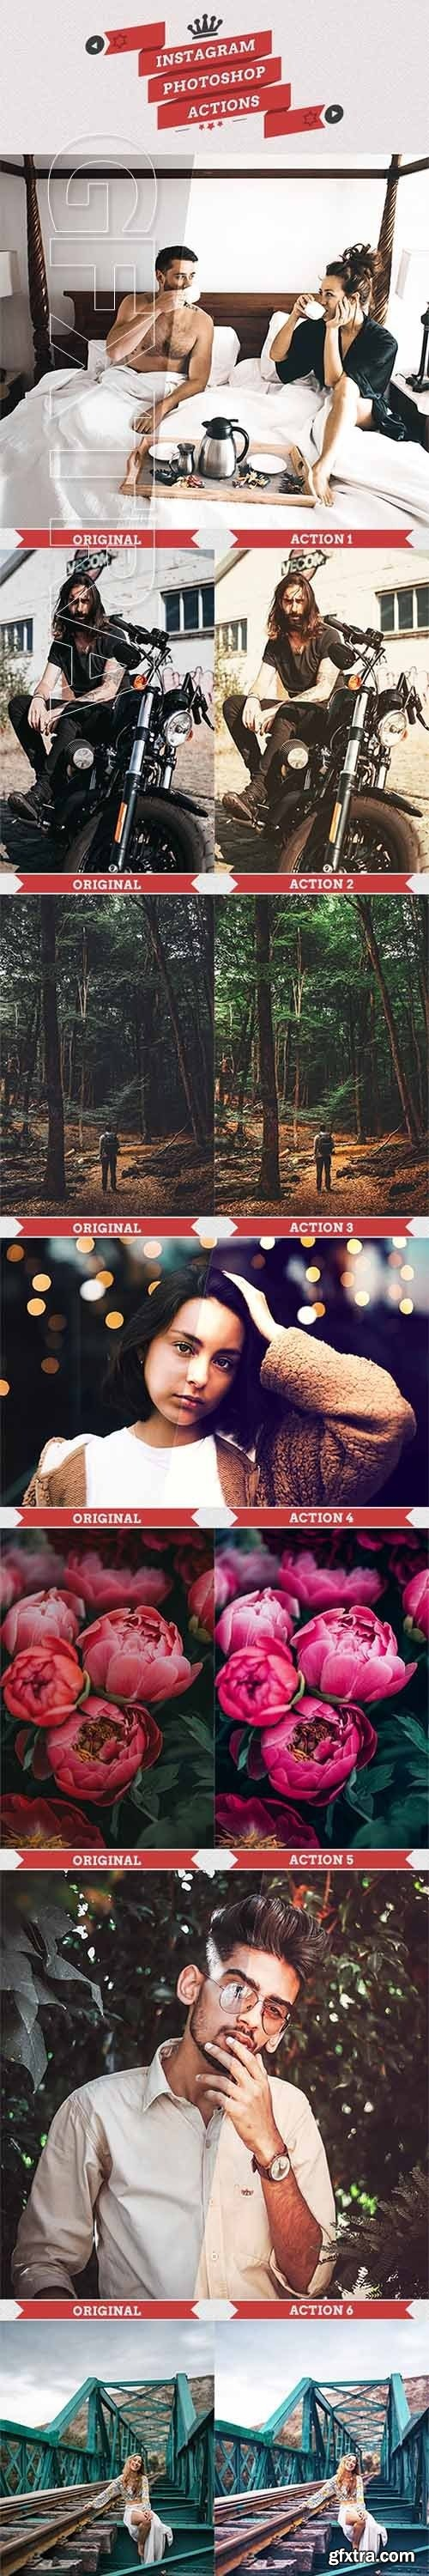 GraphicRiver - 25 Instagram Filters Photoshop Actions 22537324